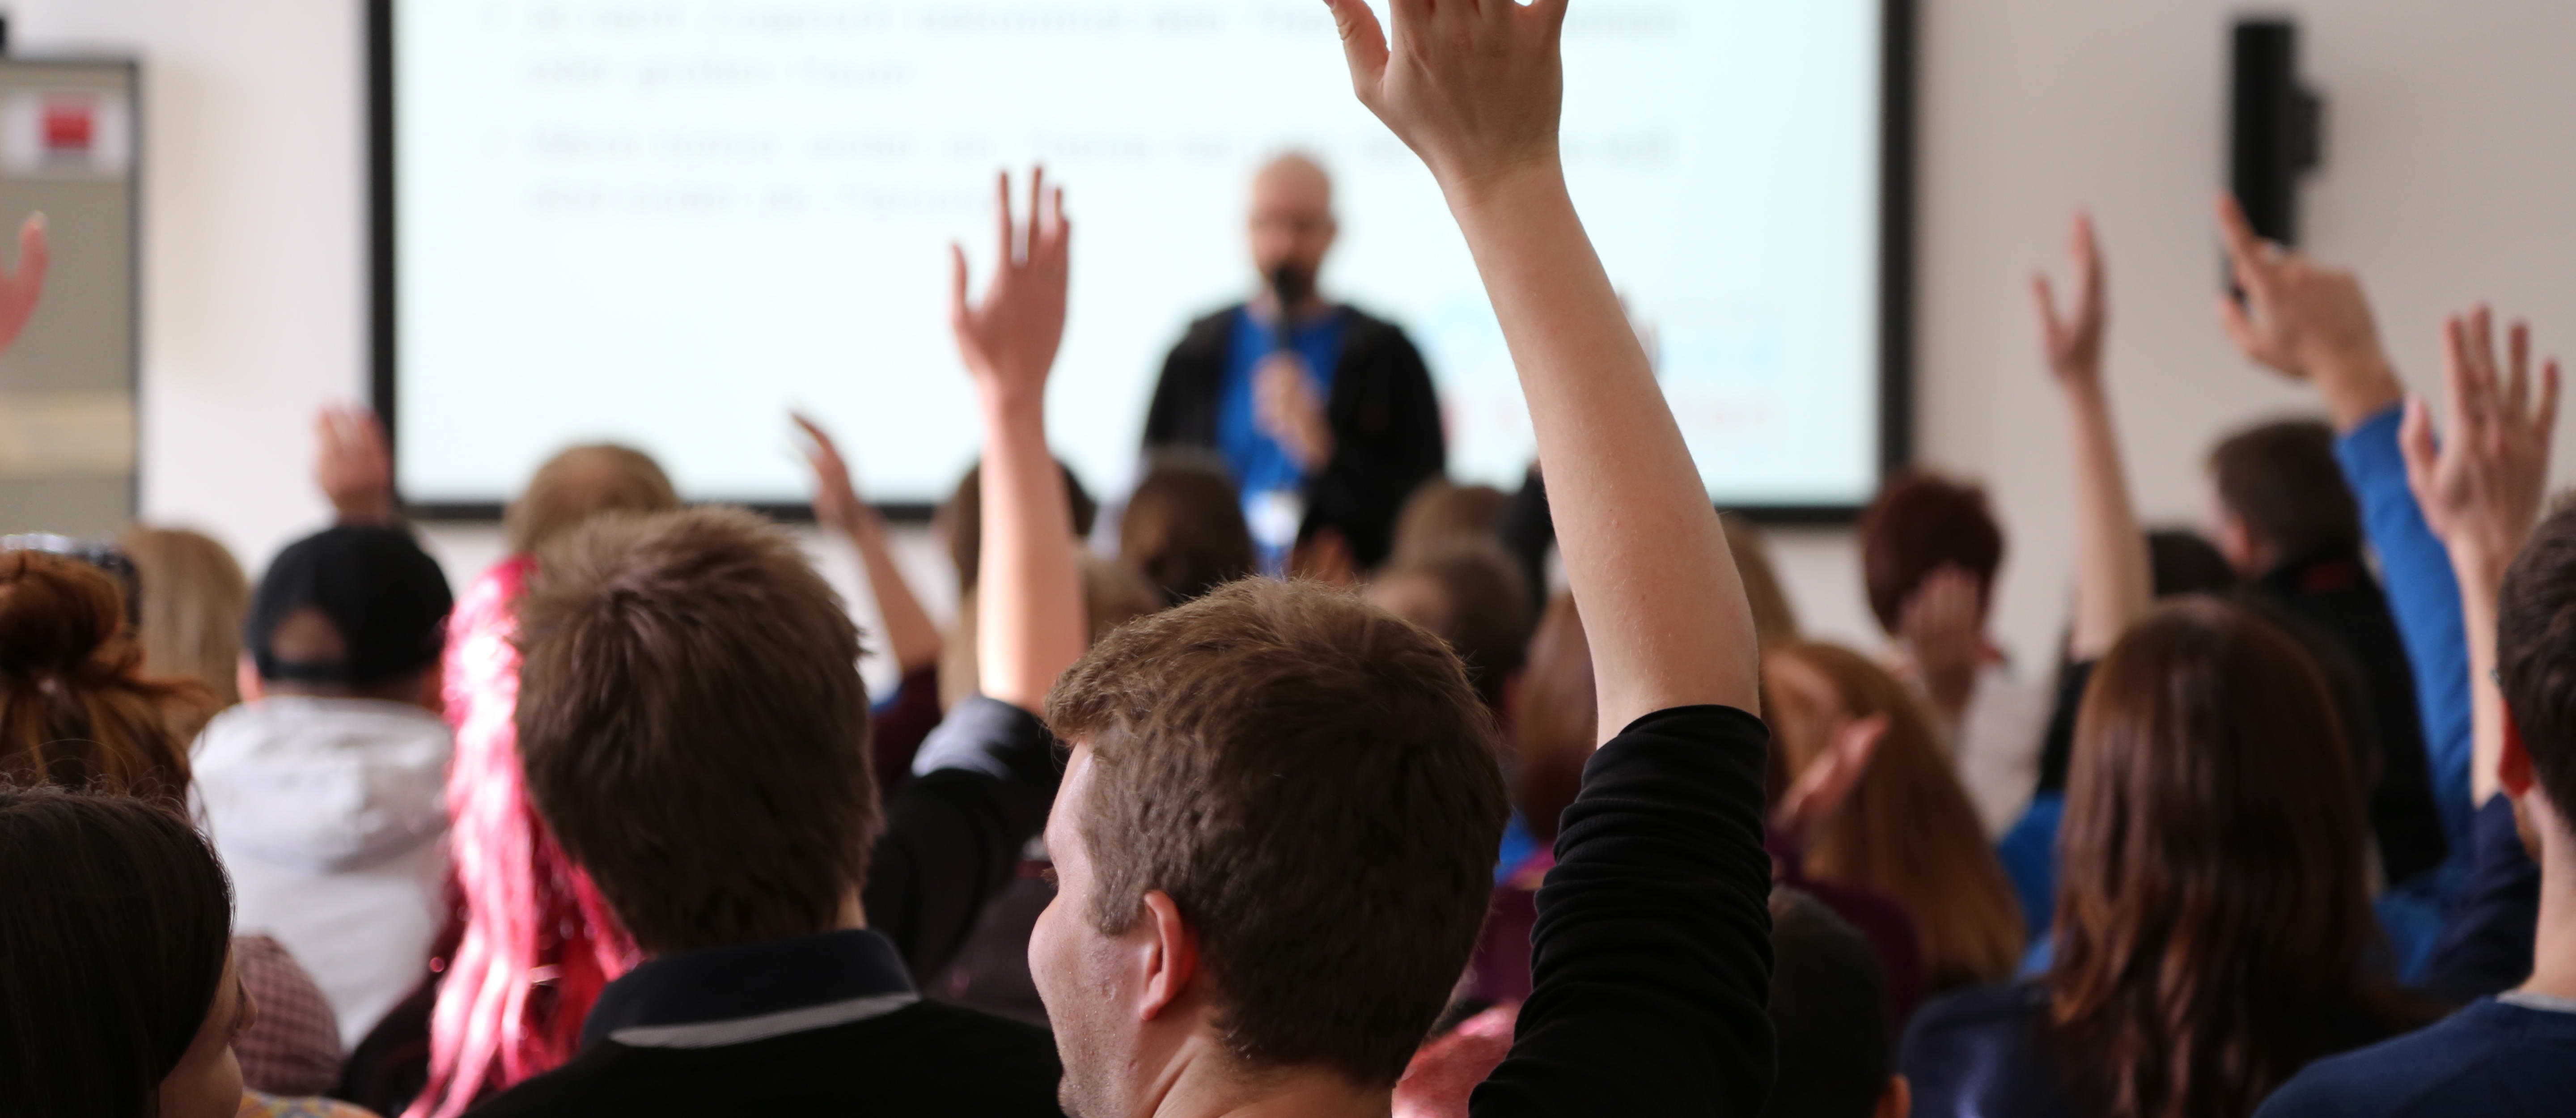 A group of students in a classroom raise their hands